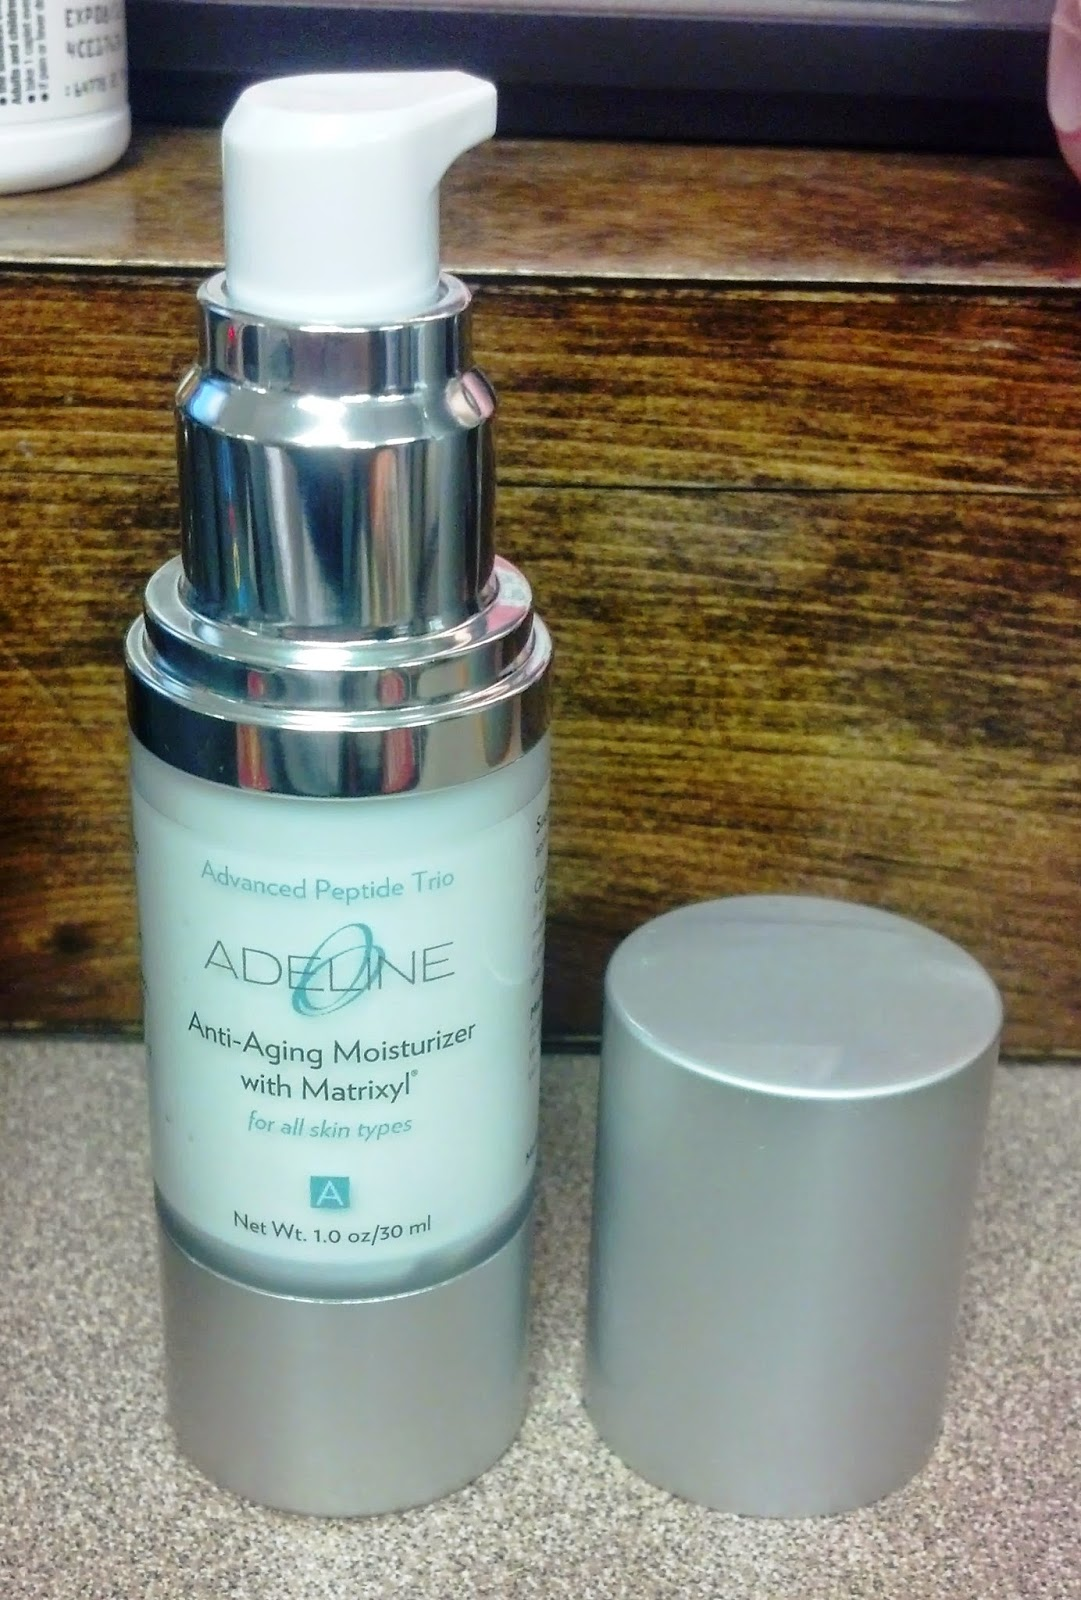 Adeline Anti-Aging Moisturizer with Matrixyl Review